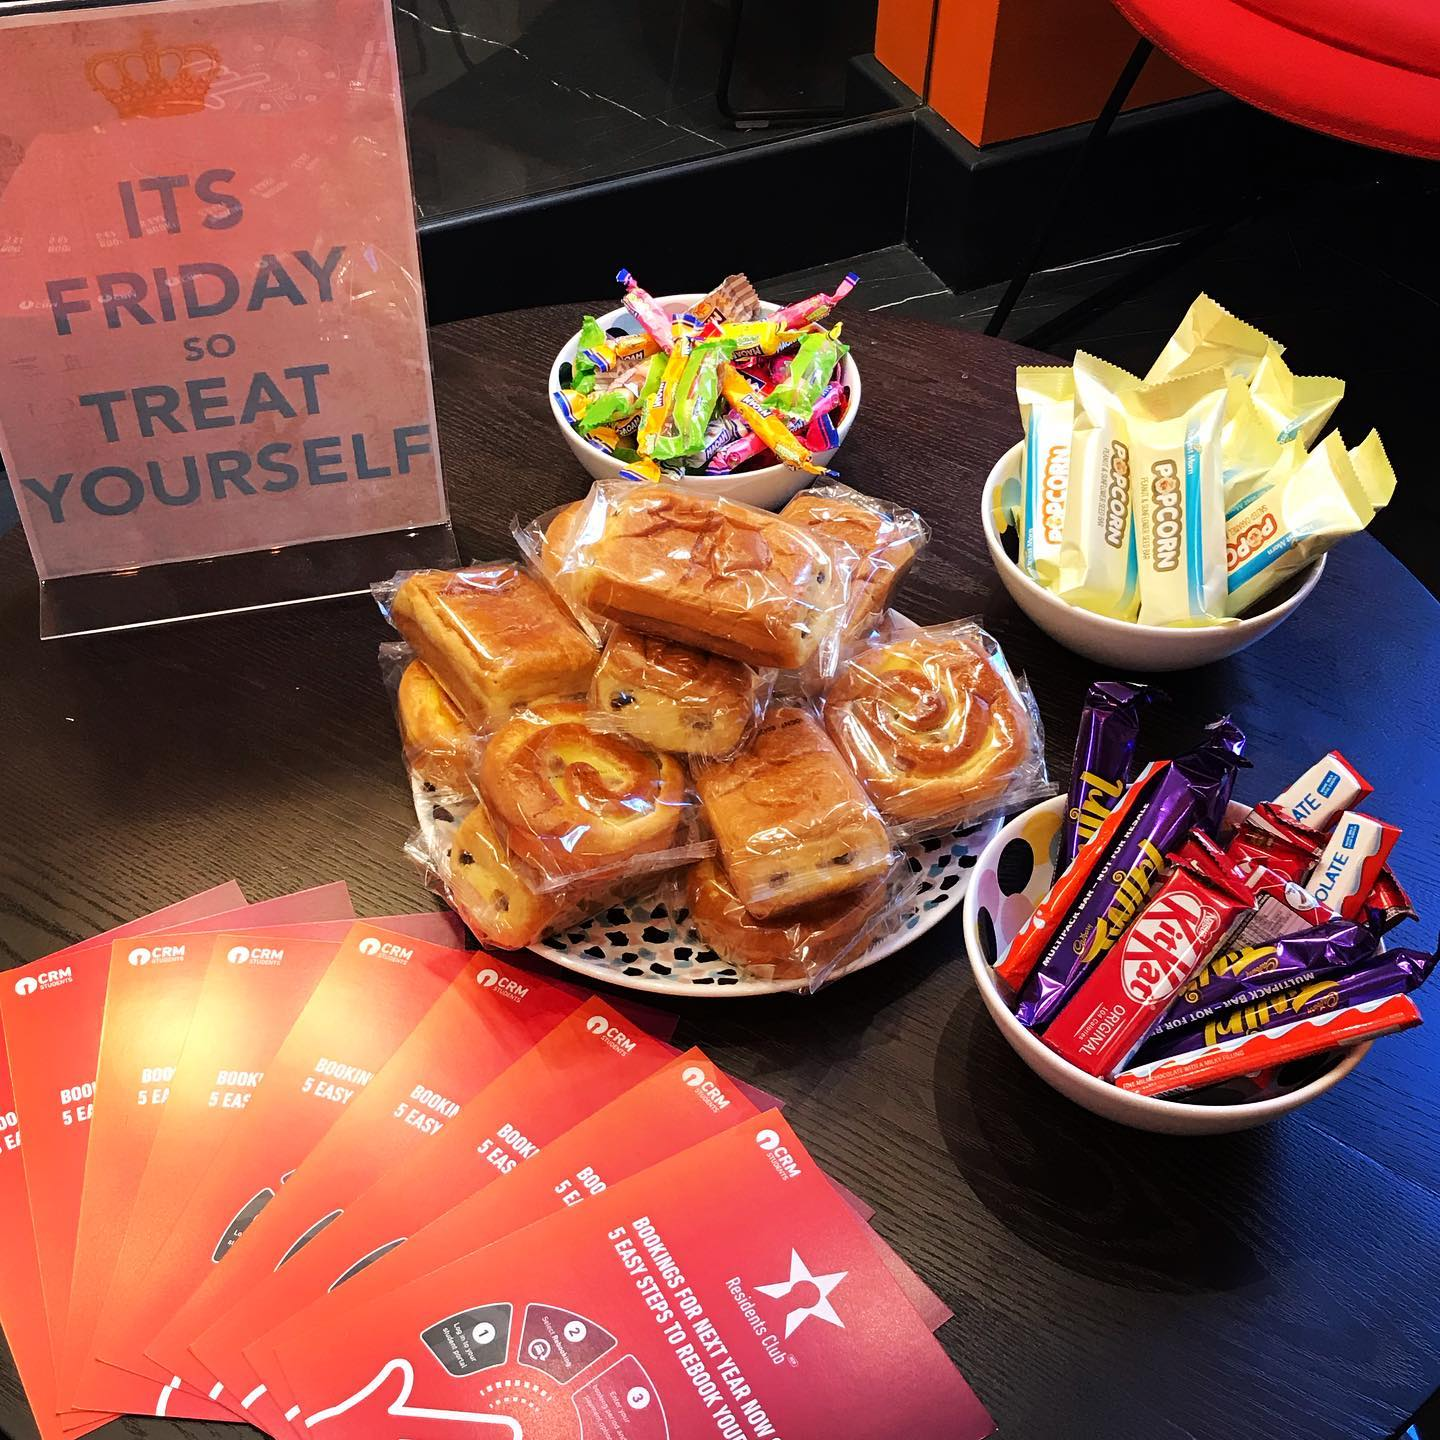 Grab some sugar on your way out. It's Friday, why not? . . .